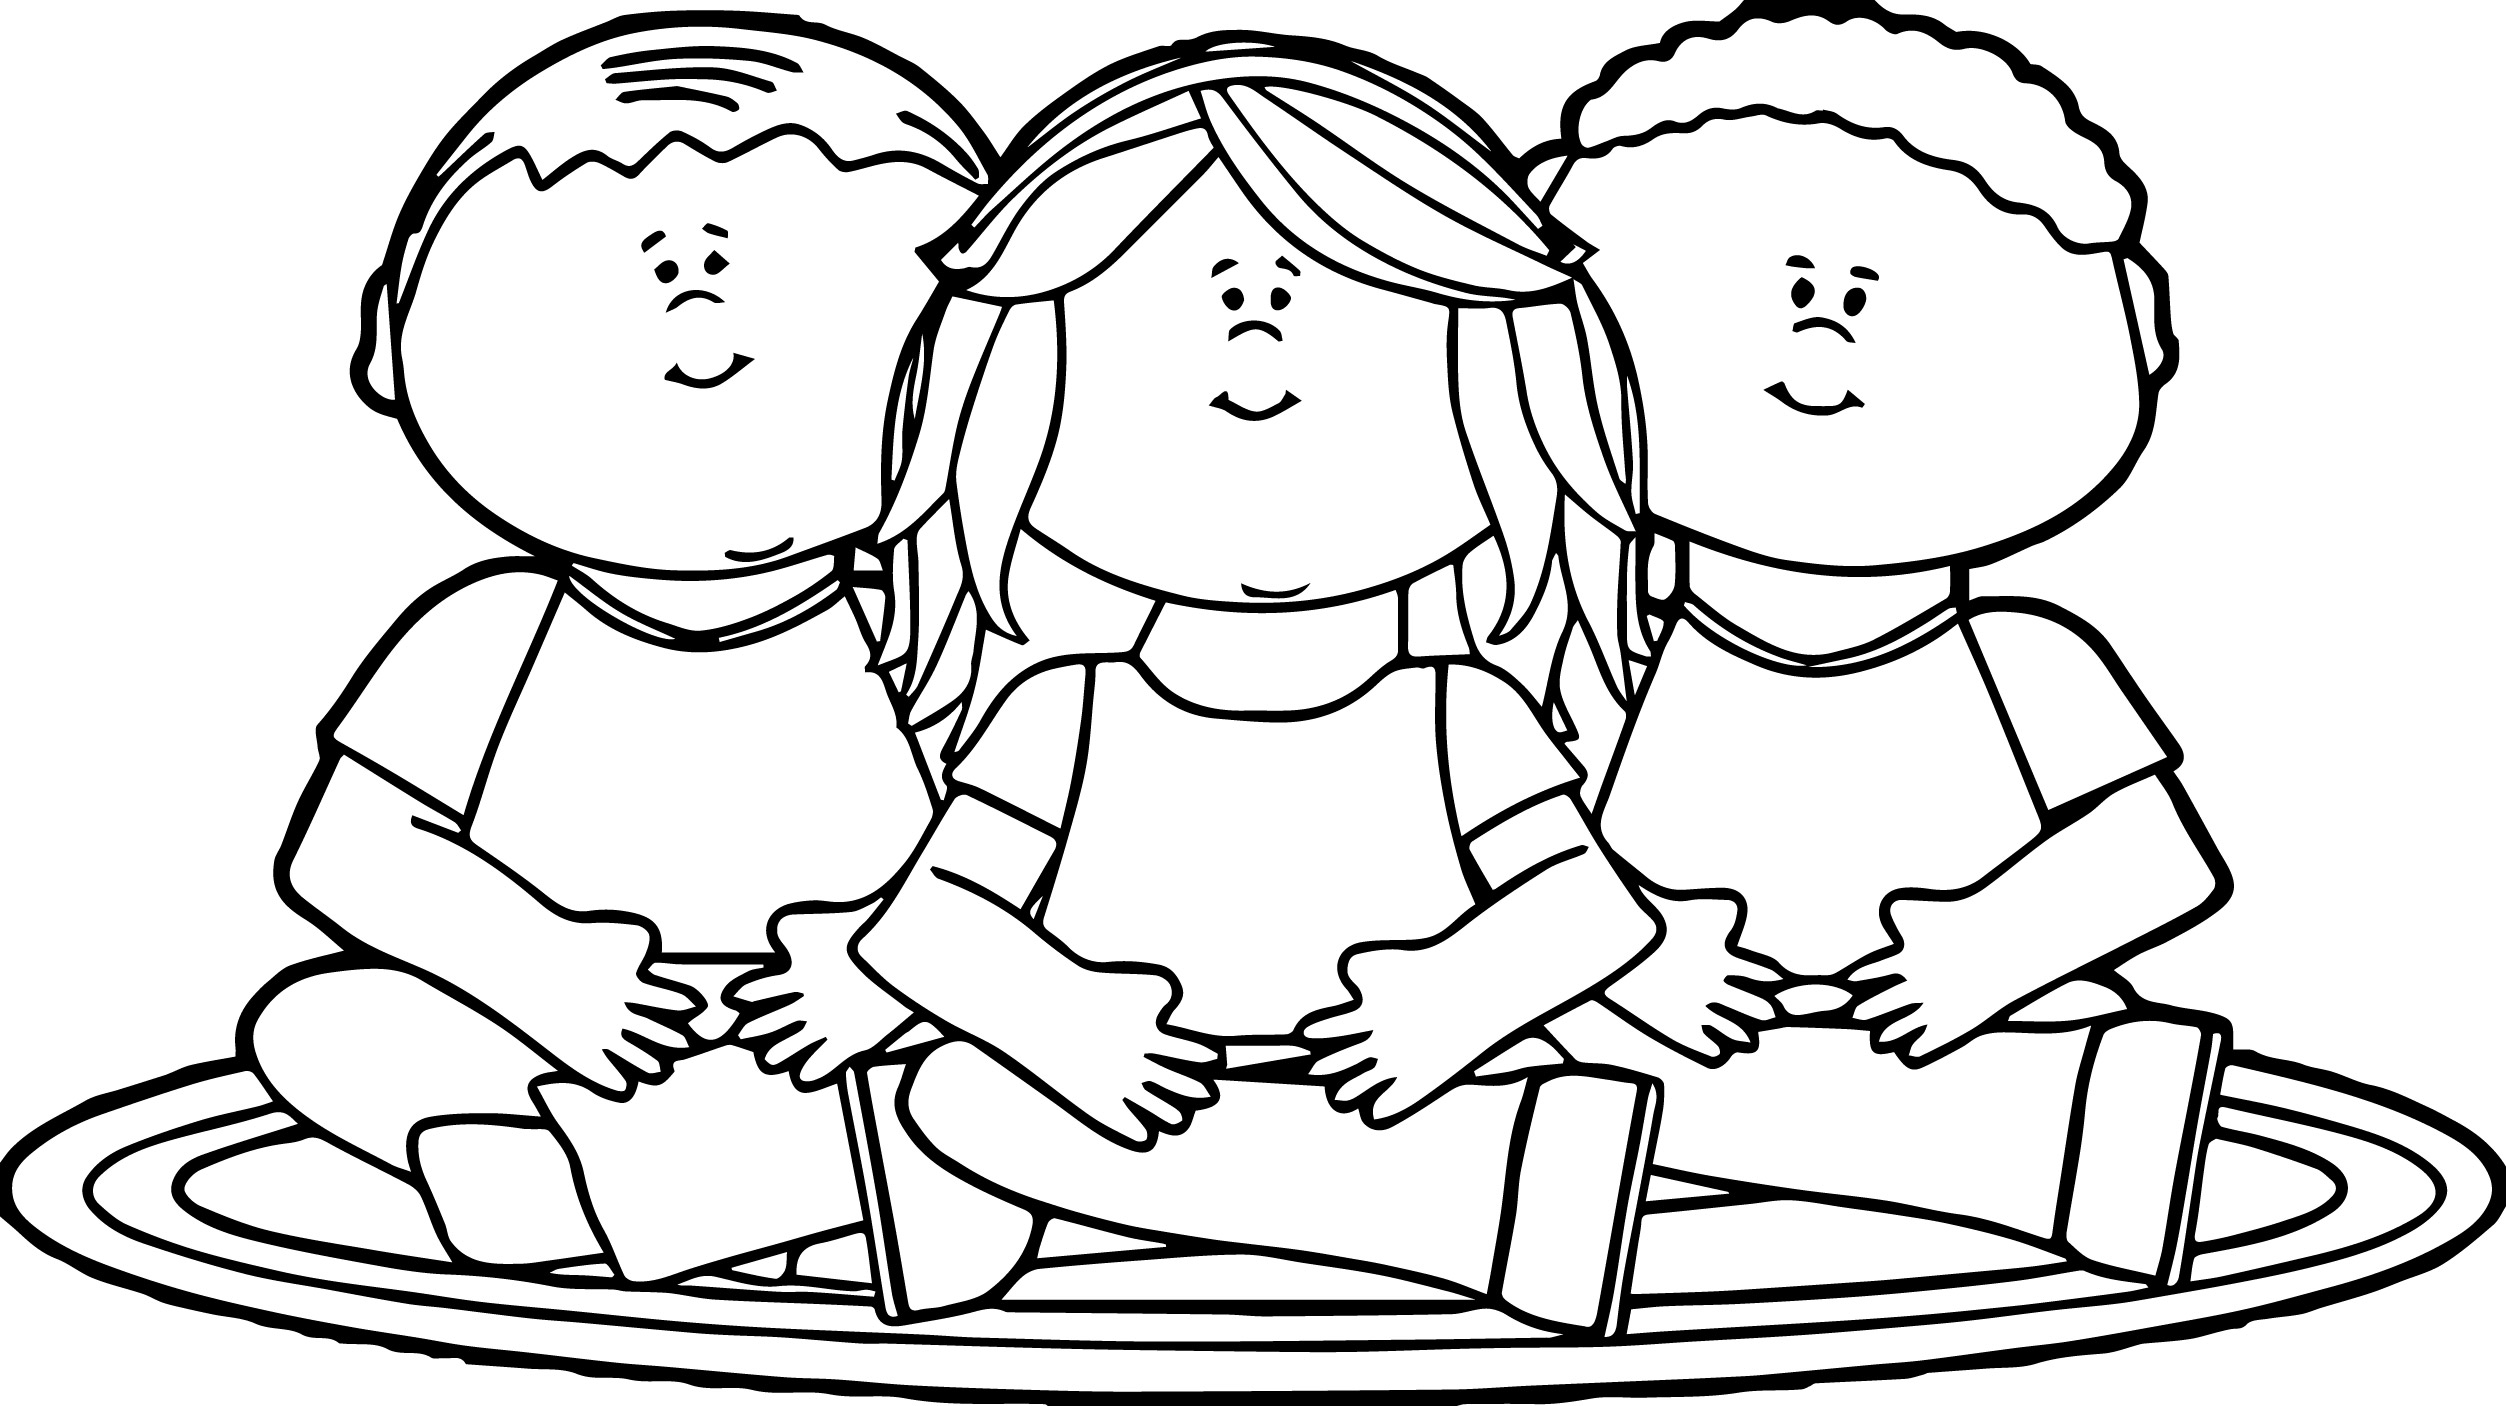 at school children coloring pages - photo#30